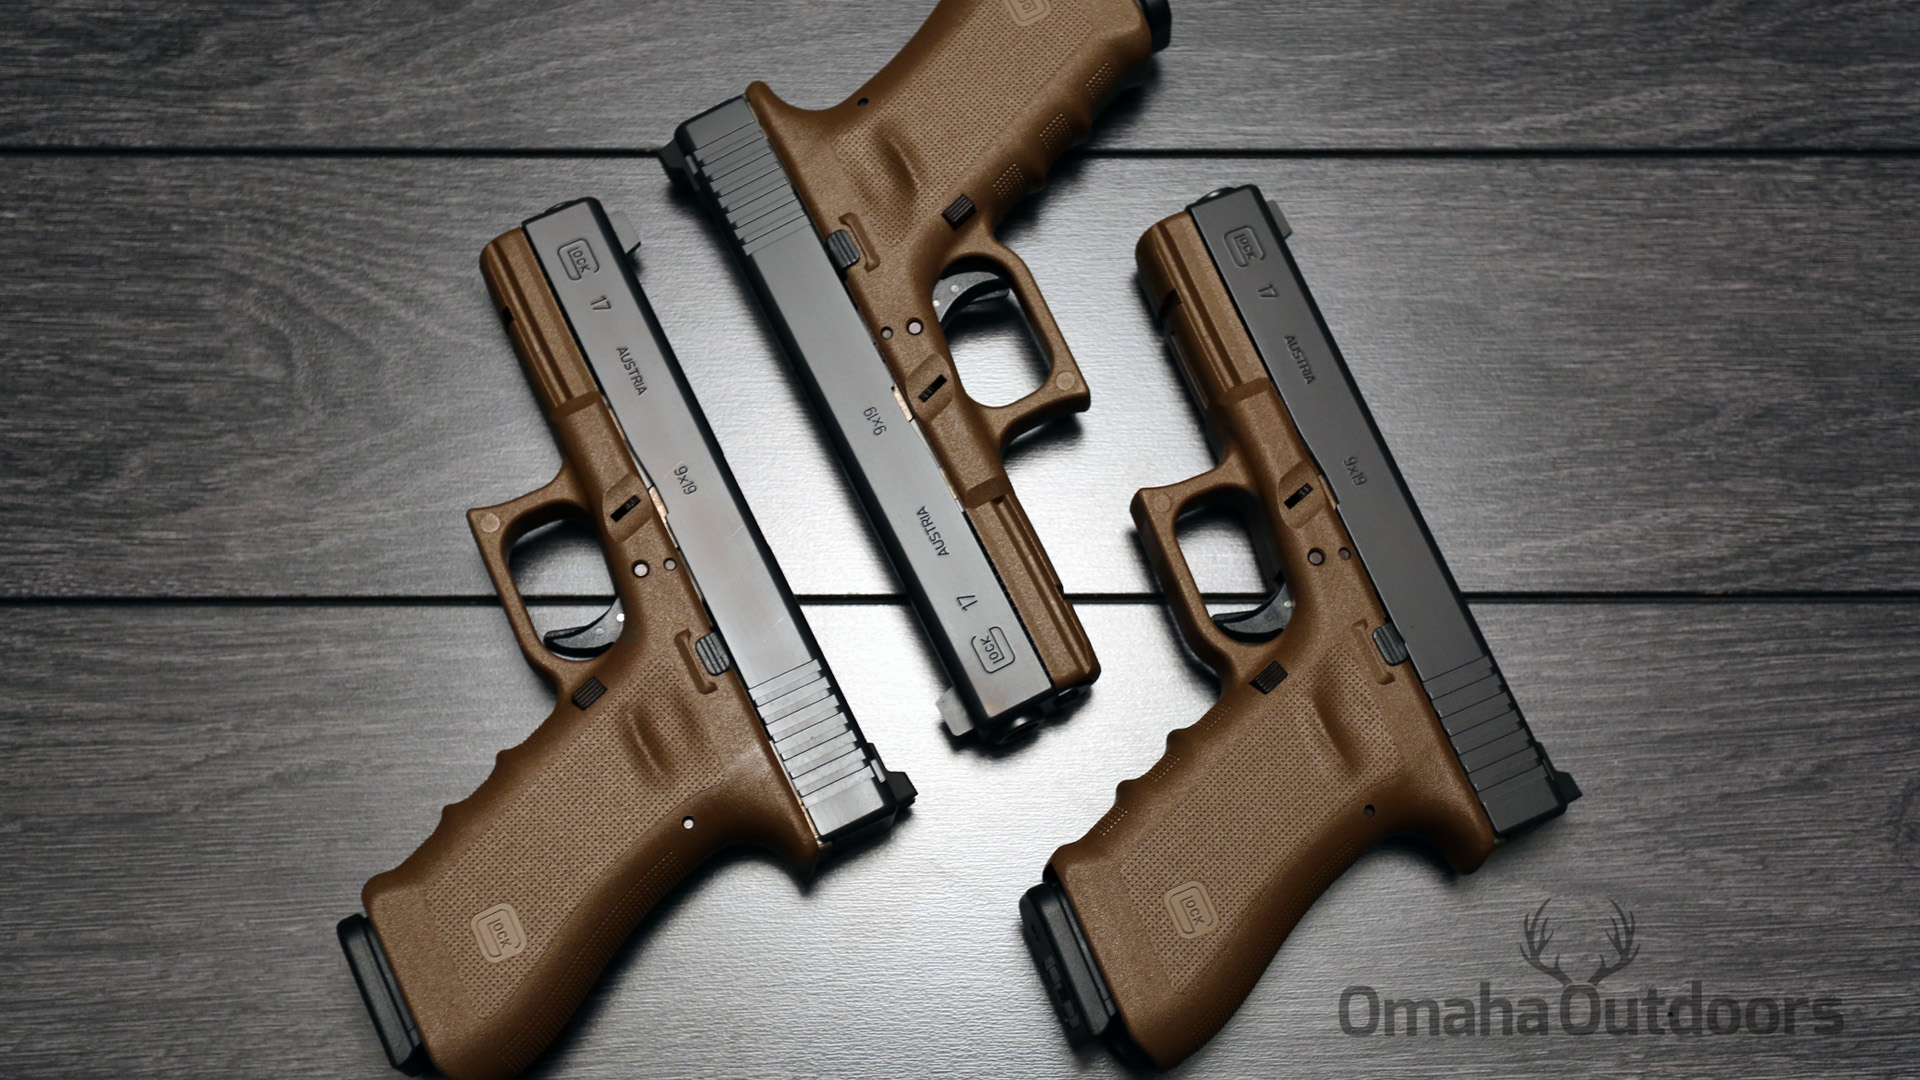 First Look: Limited Vickers Tactical Glocks 17 / 19 RTF2 FDE